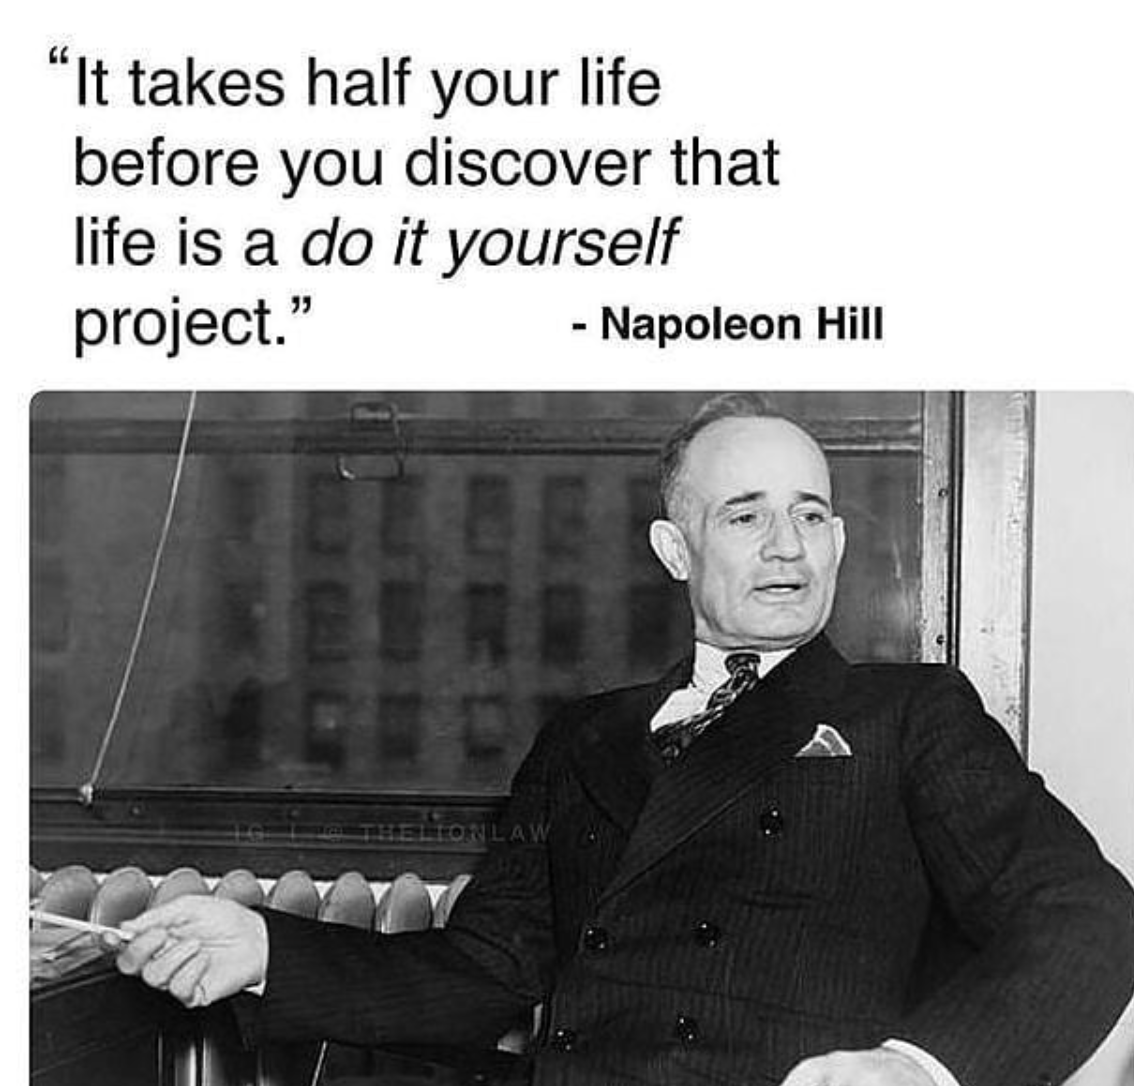 [Image] It takes half your life before you discover that life is a do it yourself project.